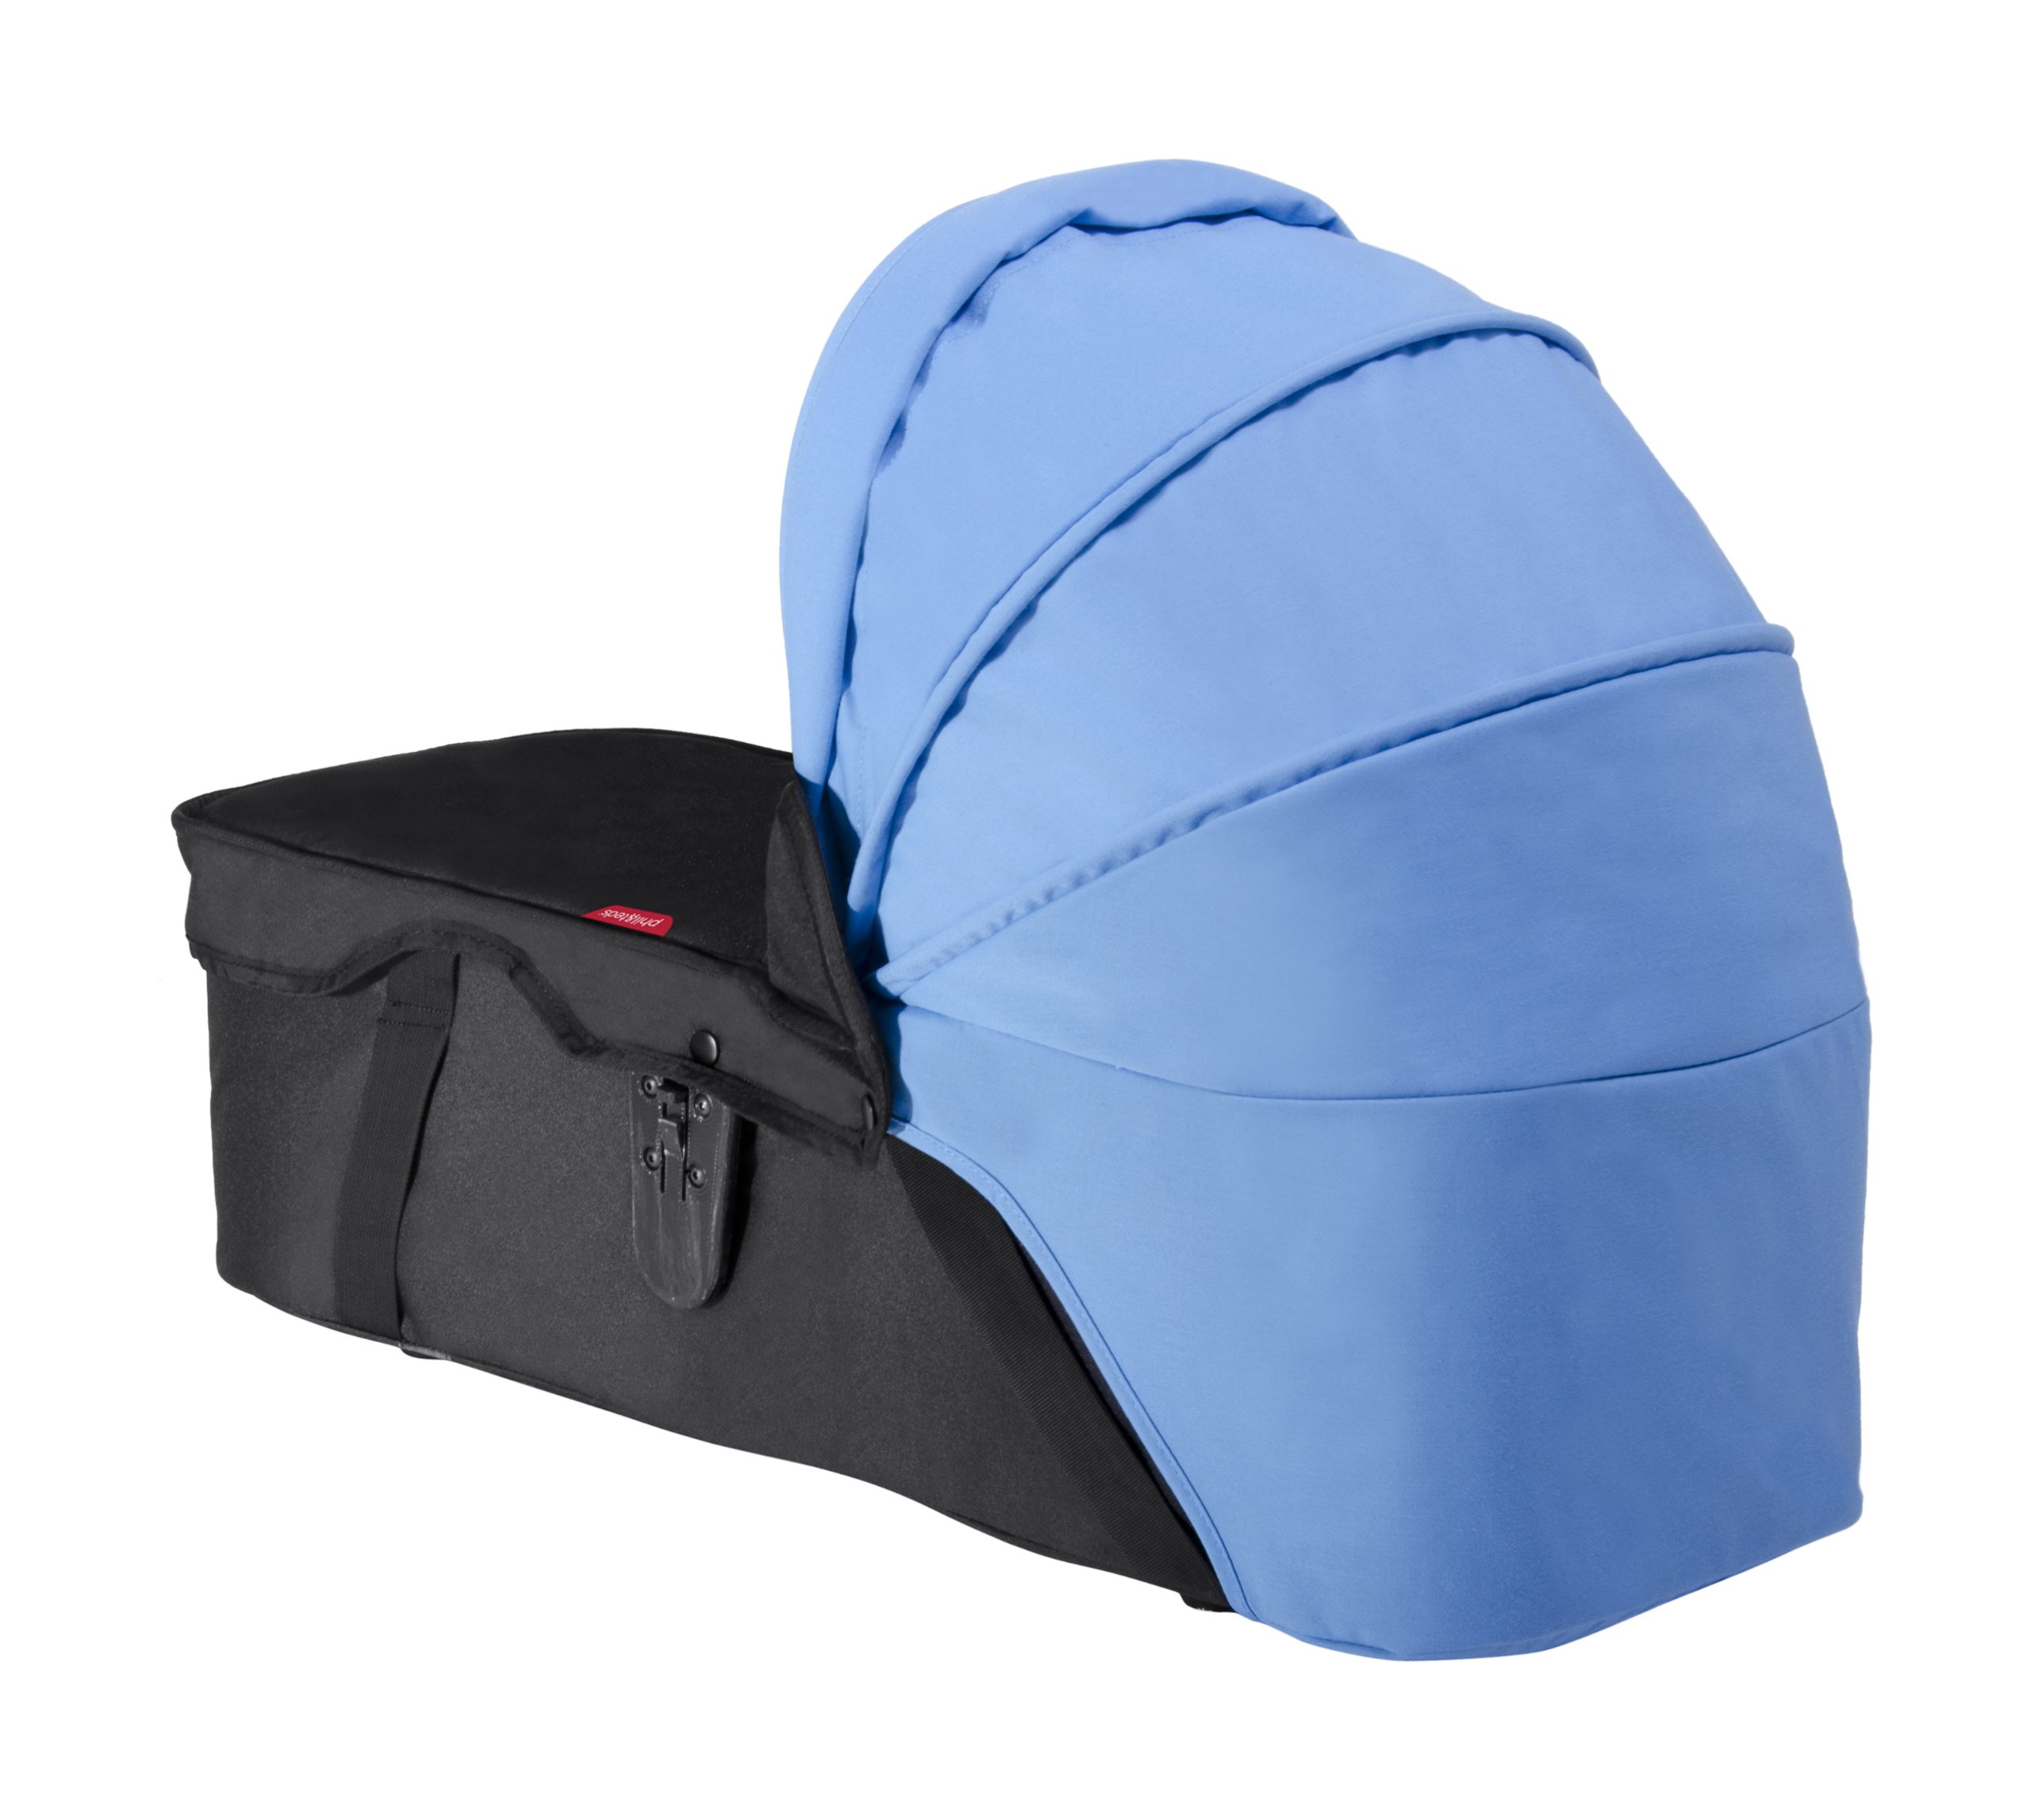 phil&teds Snug Carry Cot Sunhood - Sky